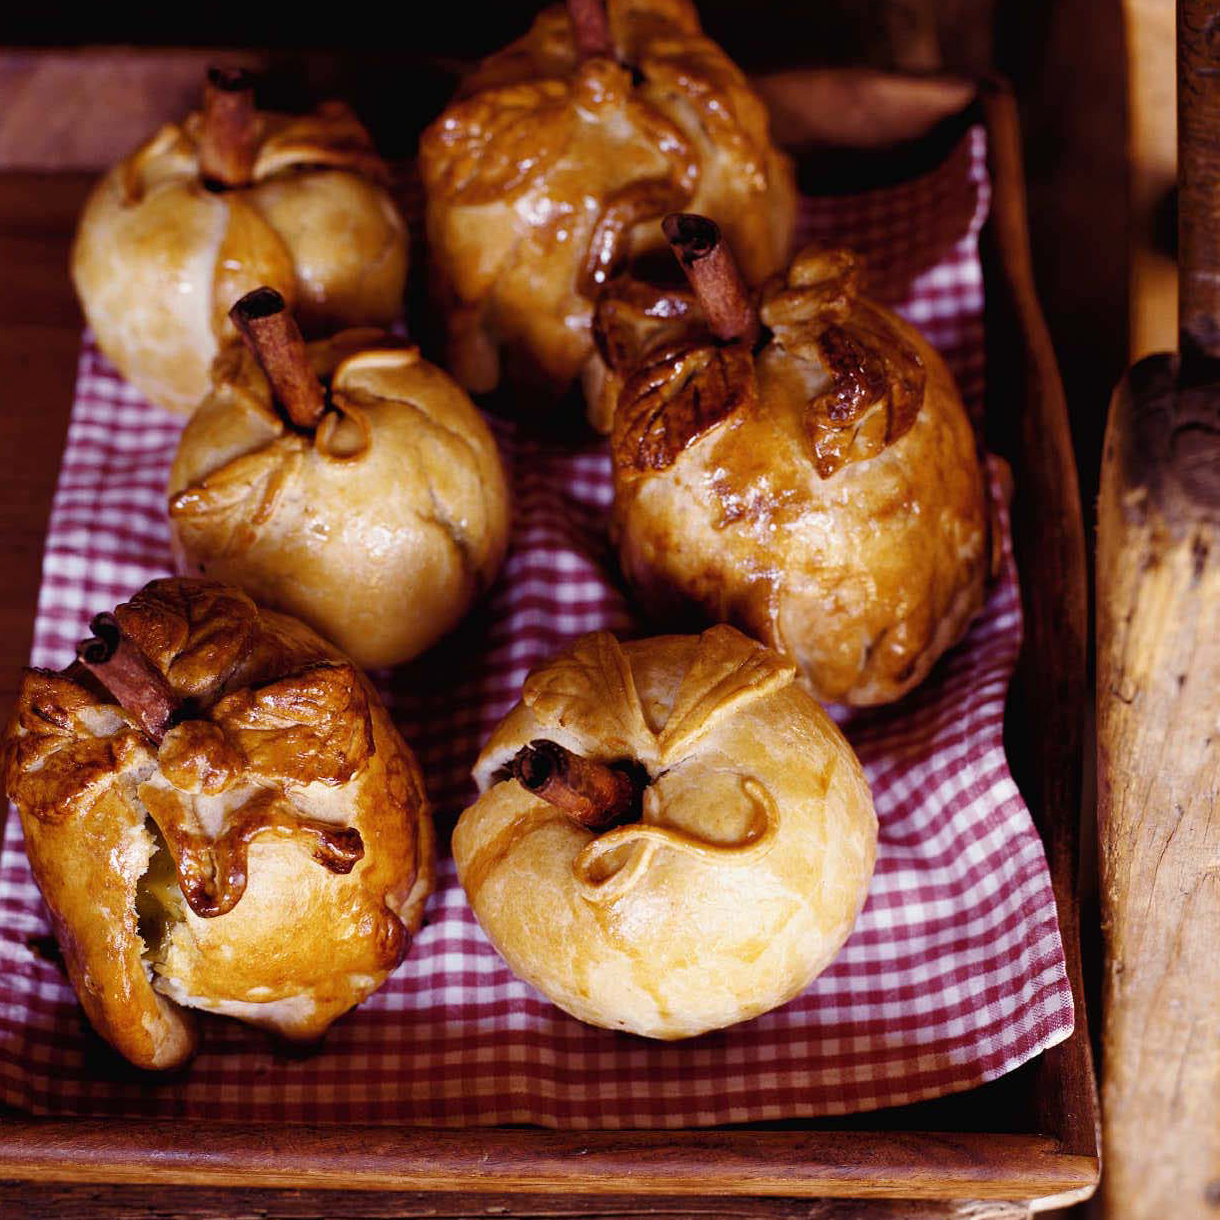 Apples Baked in Pastry with Plum Sauce